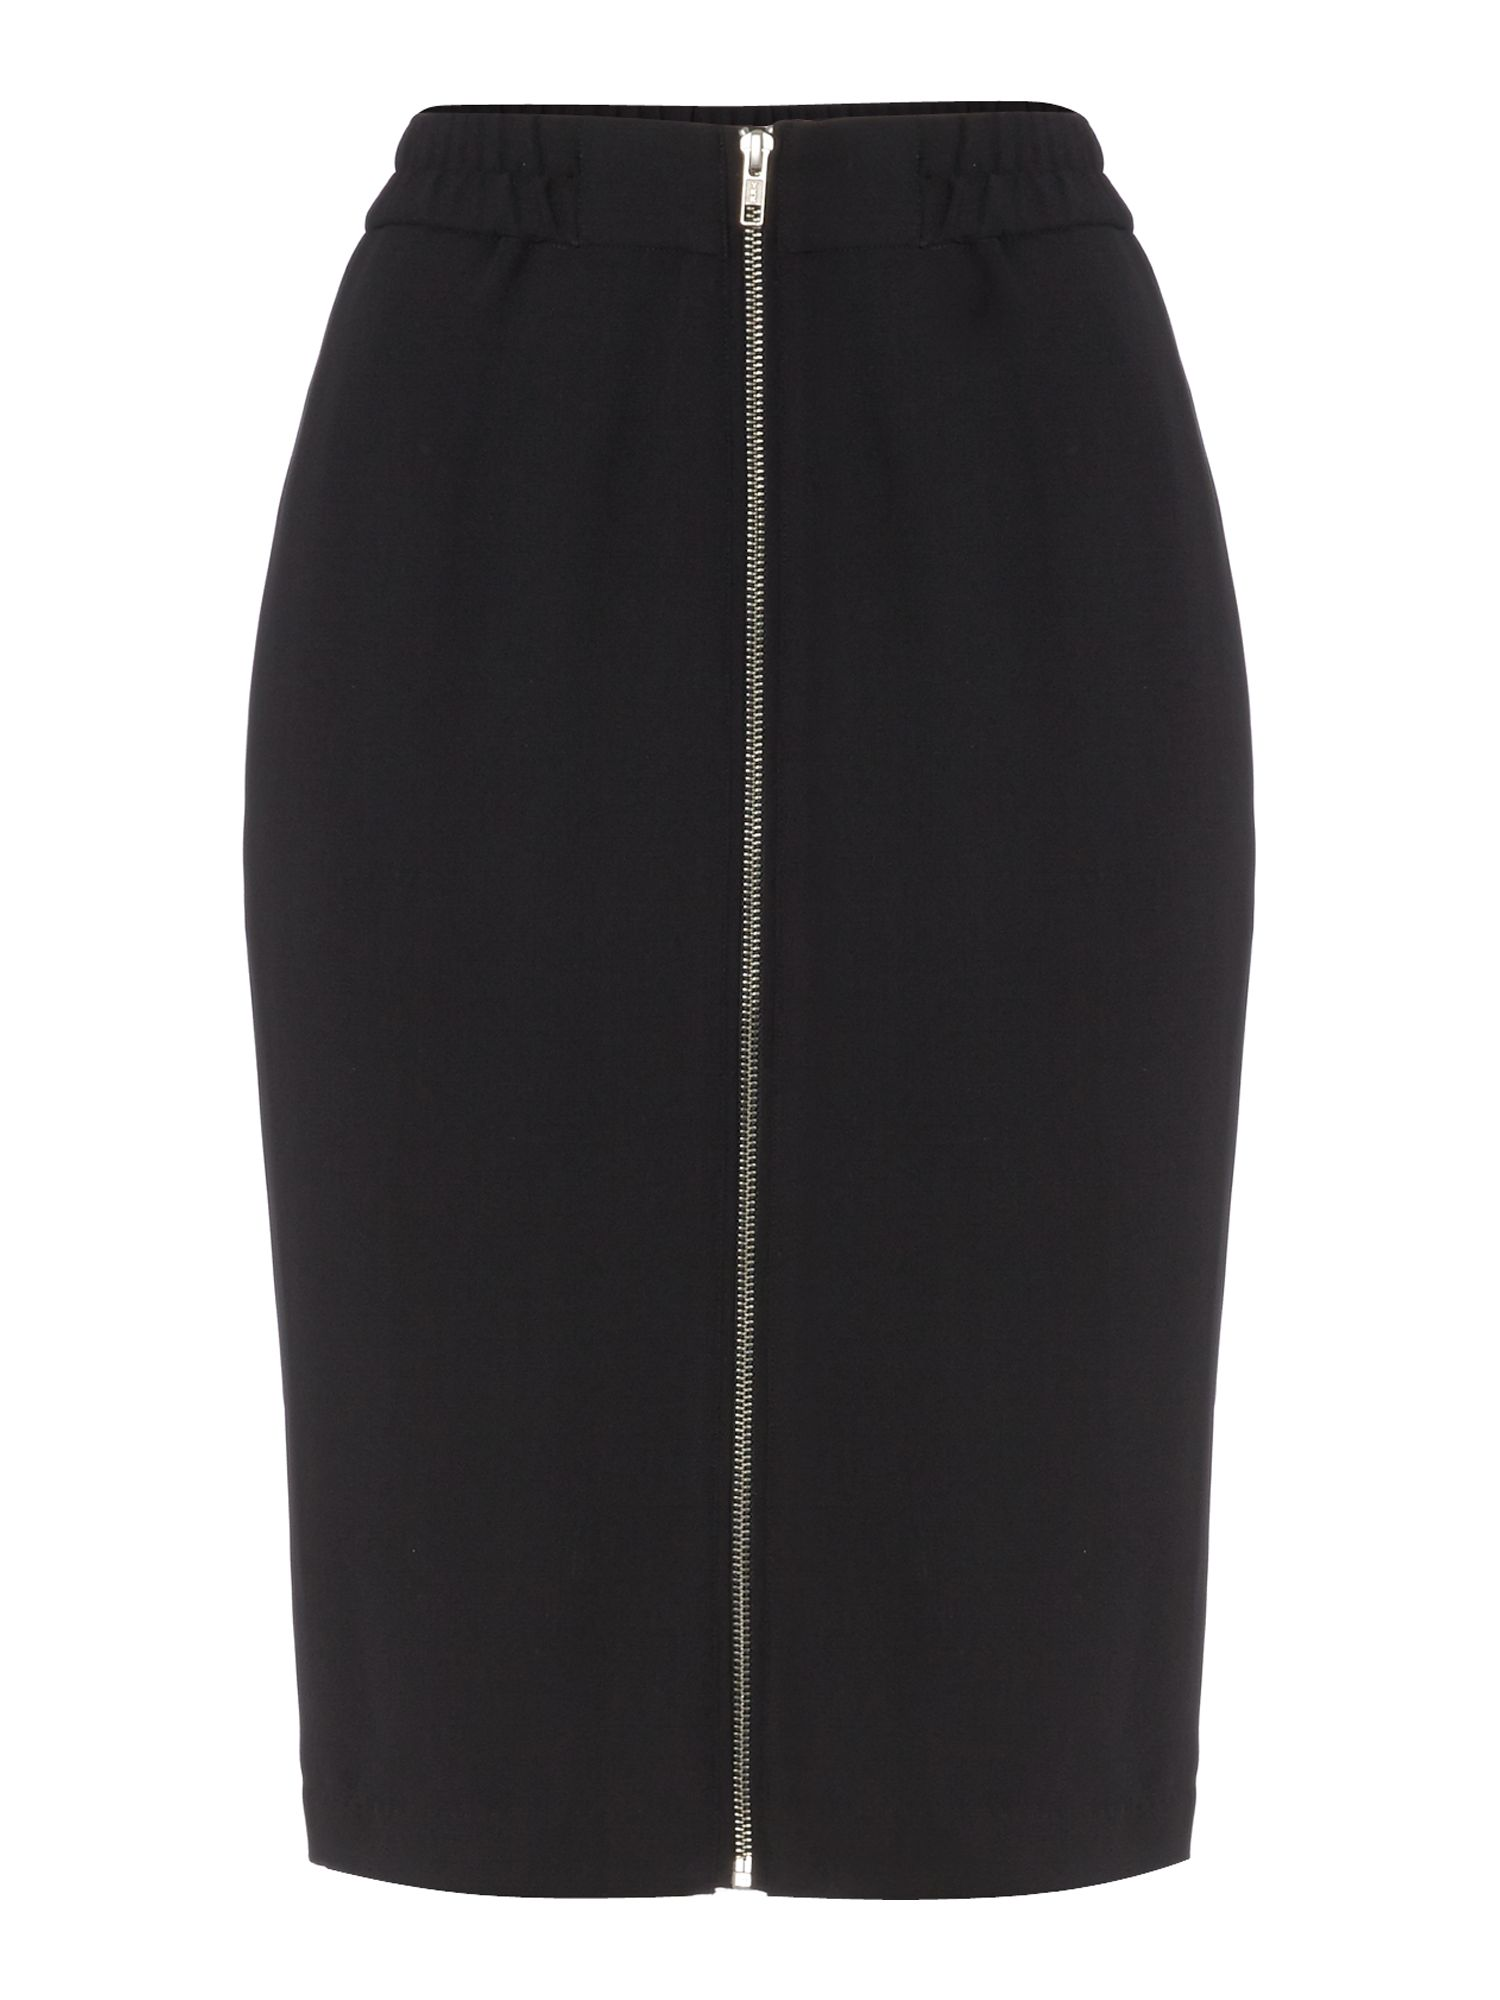 Zip front sport pencil skirt